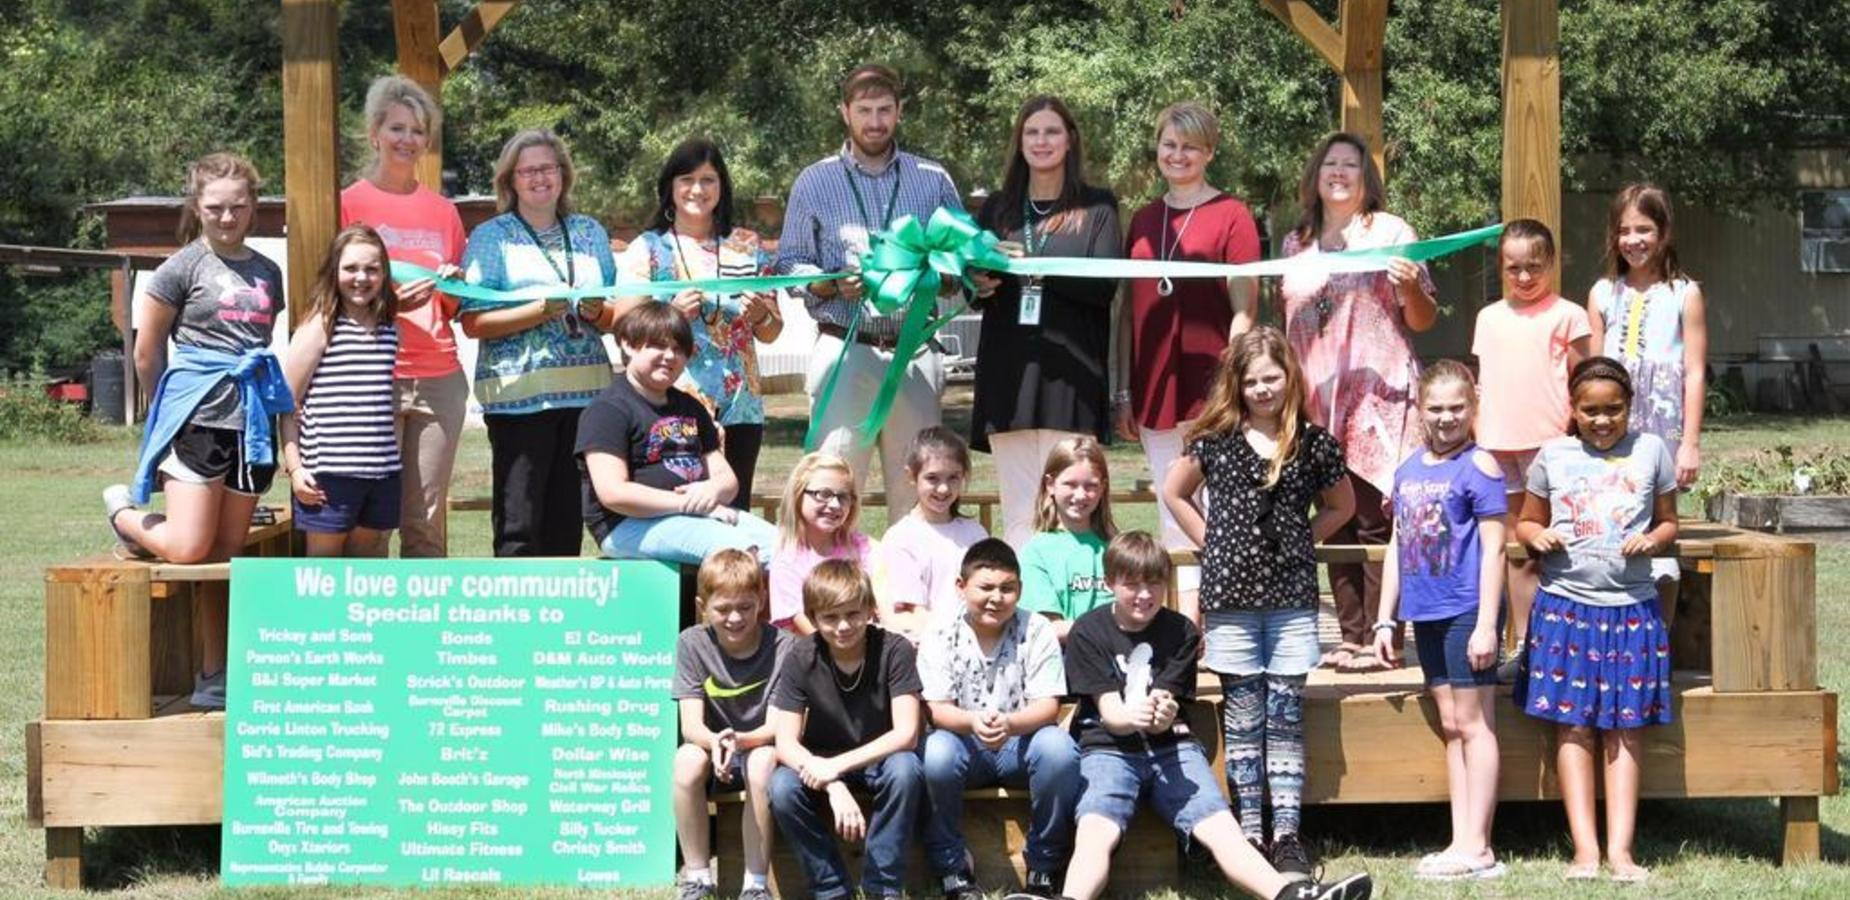 Burnsville Community Donates to help build an Outdoor learning classroom